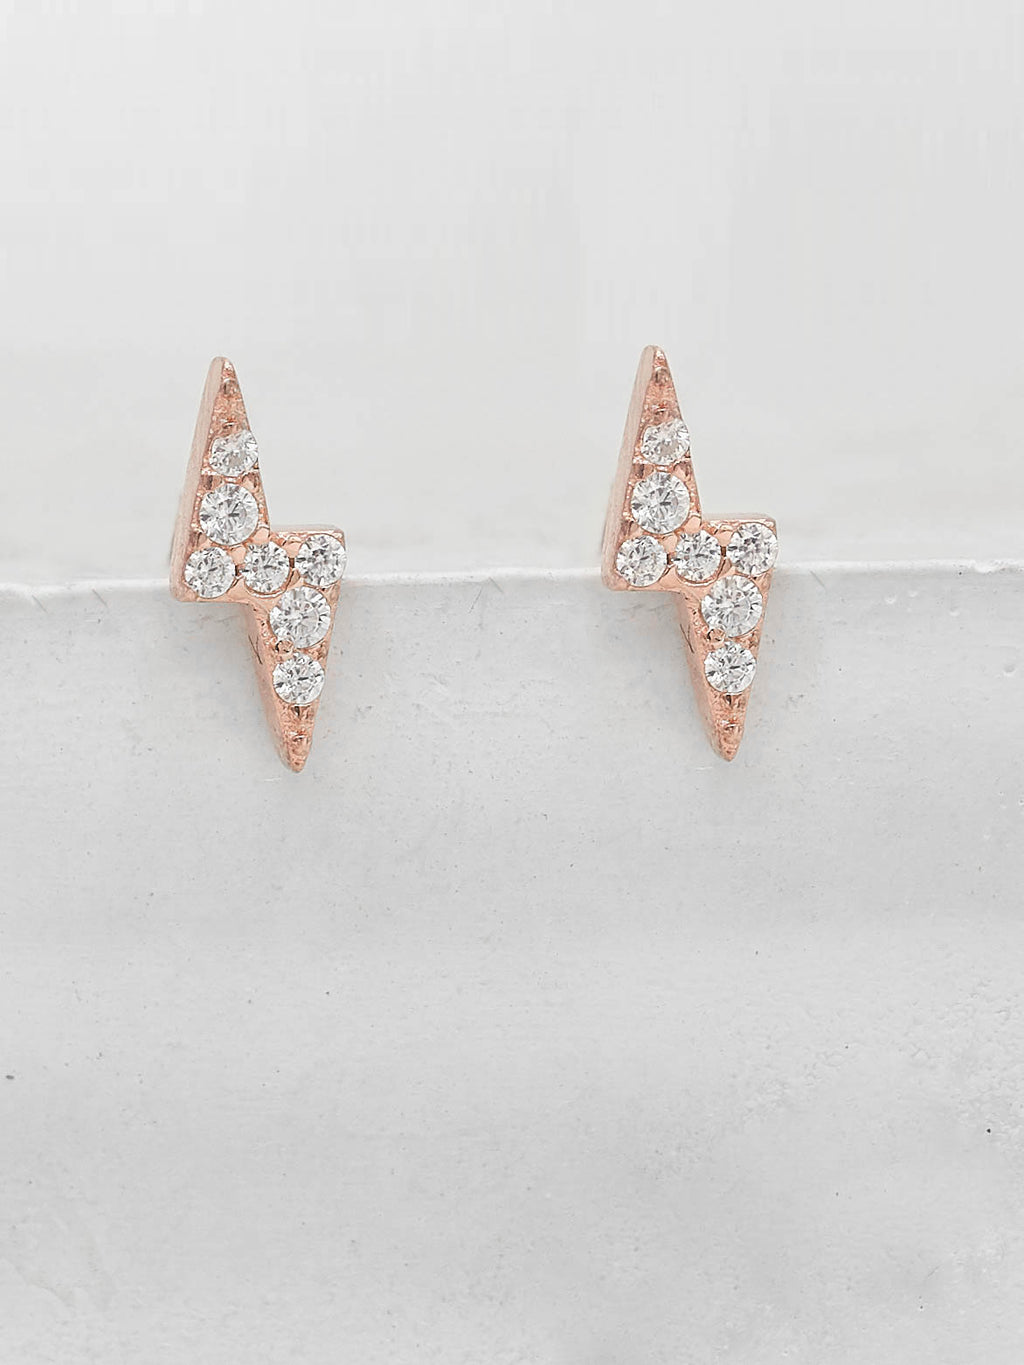 Rose gold Plated Tiny Lightning Bolt design with White Round CZ Cubic Zirconia Stud Earrings by The Faint Hearted Jewelry